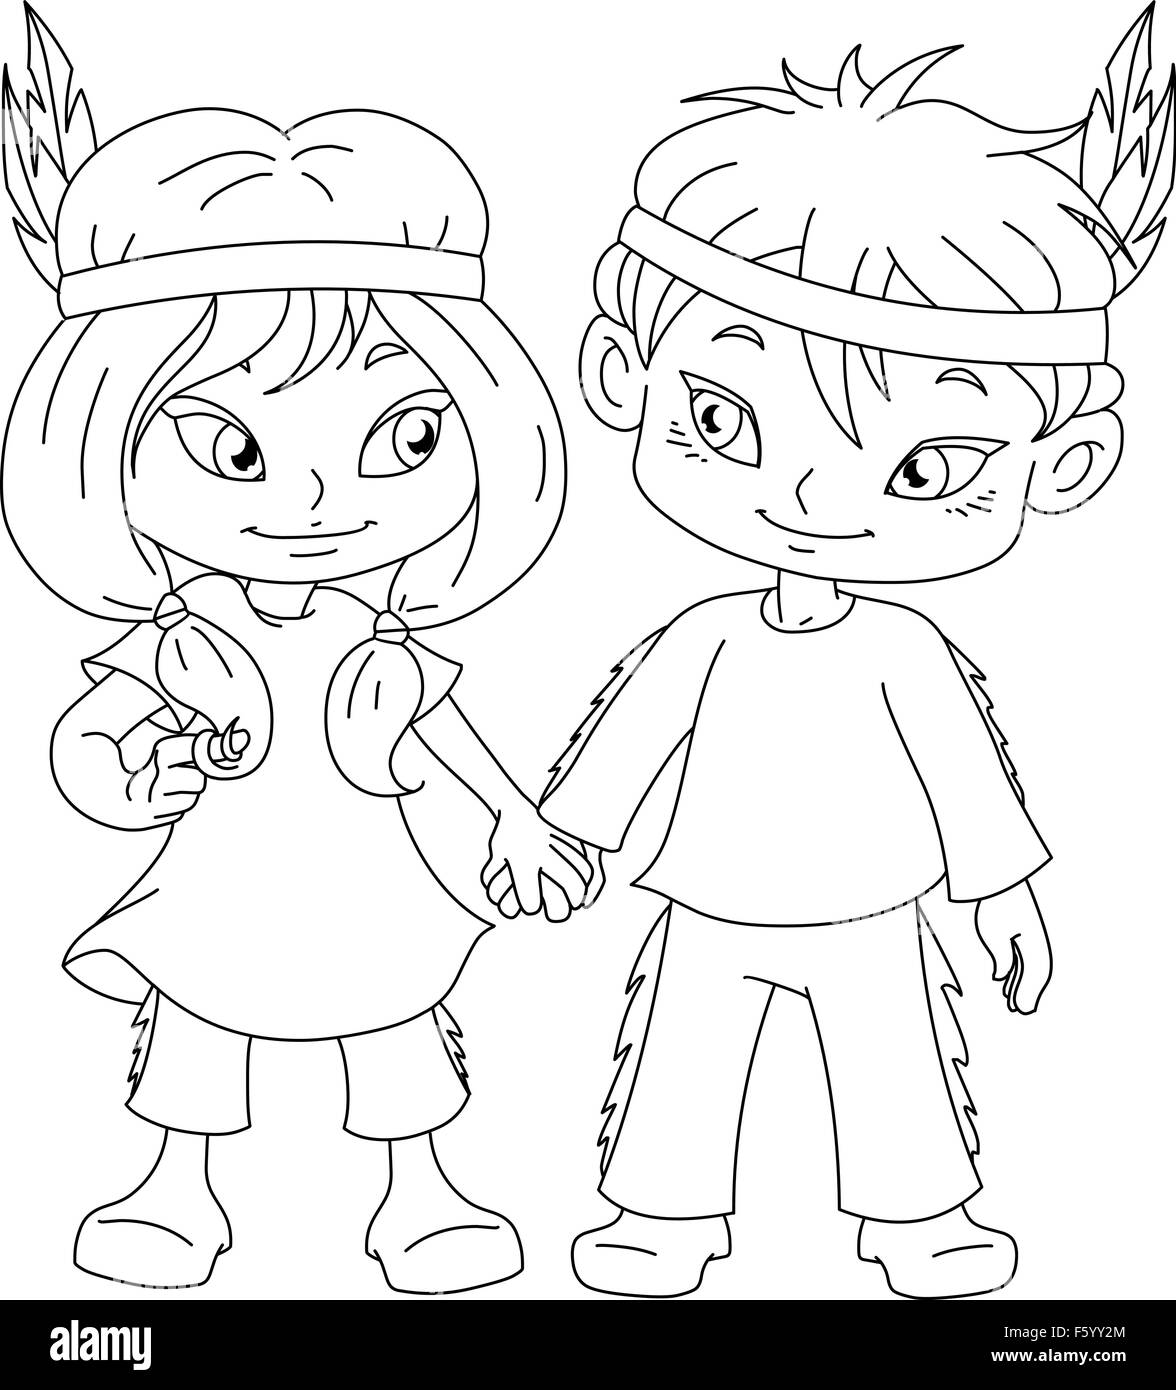 Vector Illustration Coloring Page Children Stockfotos & Vector ...